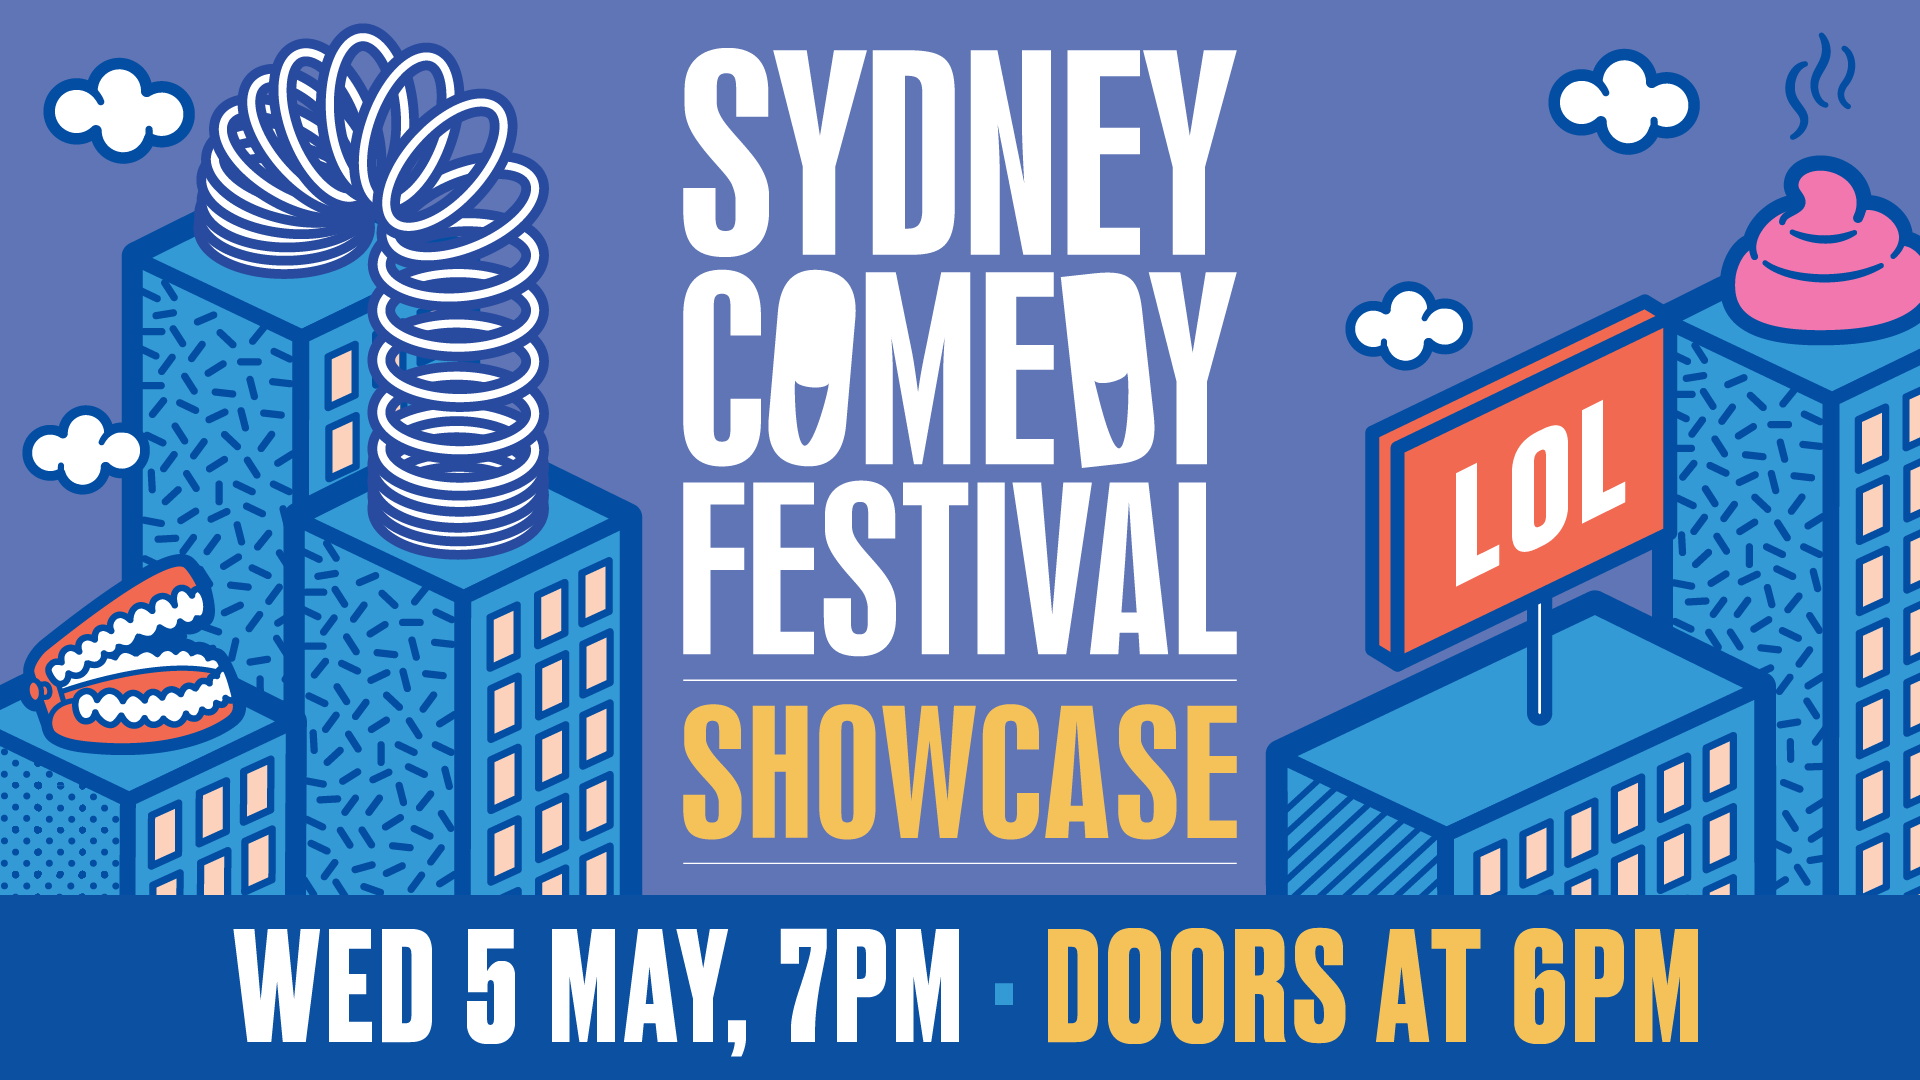 Sydney Comedy Festival Showcase at The Grounds of Alexandria